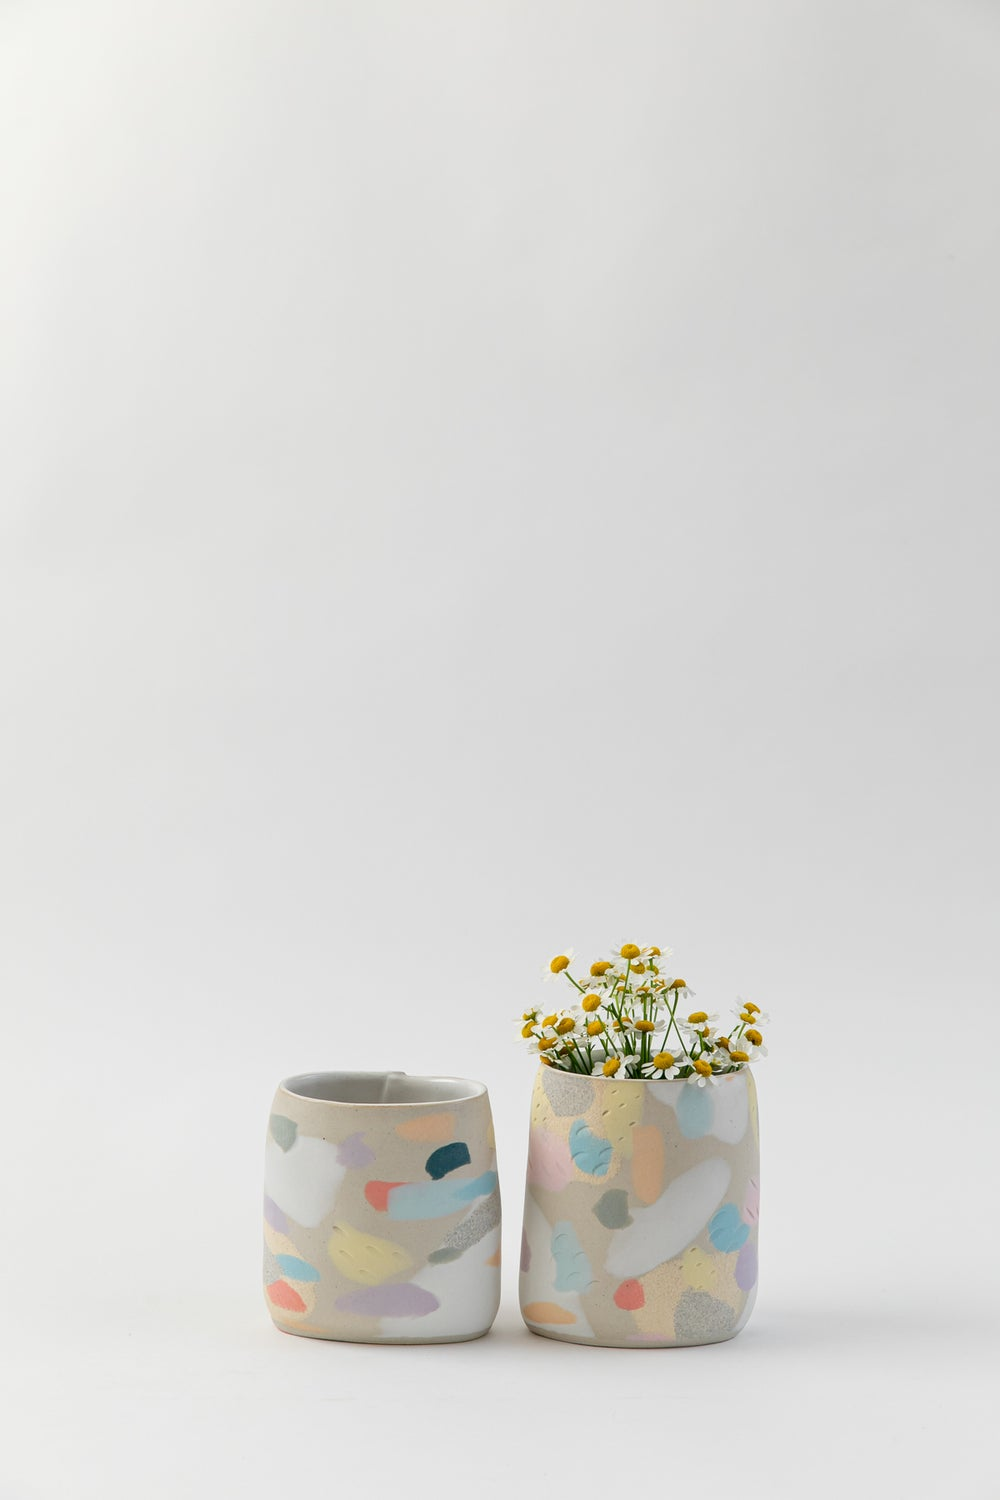 Image of Short Oval Inlay Vase - Rainbow Camo